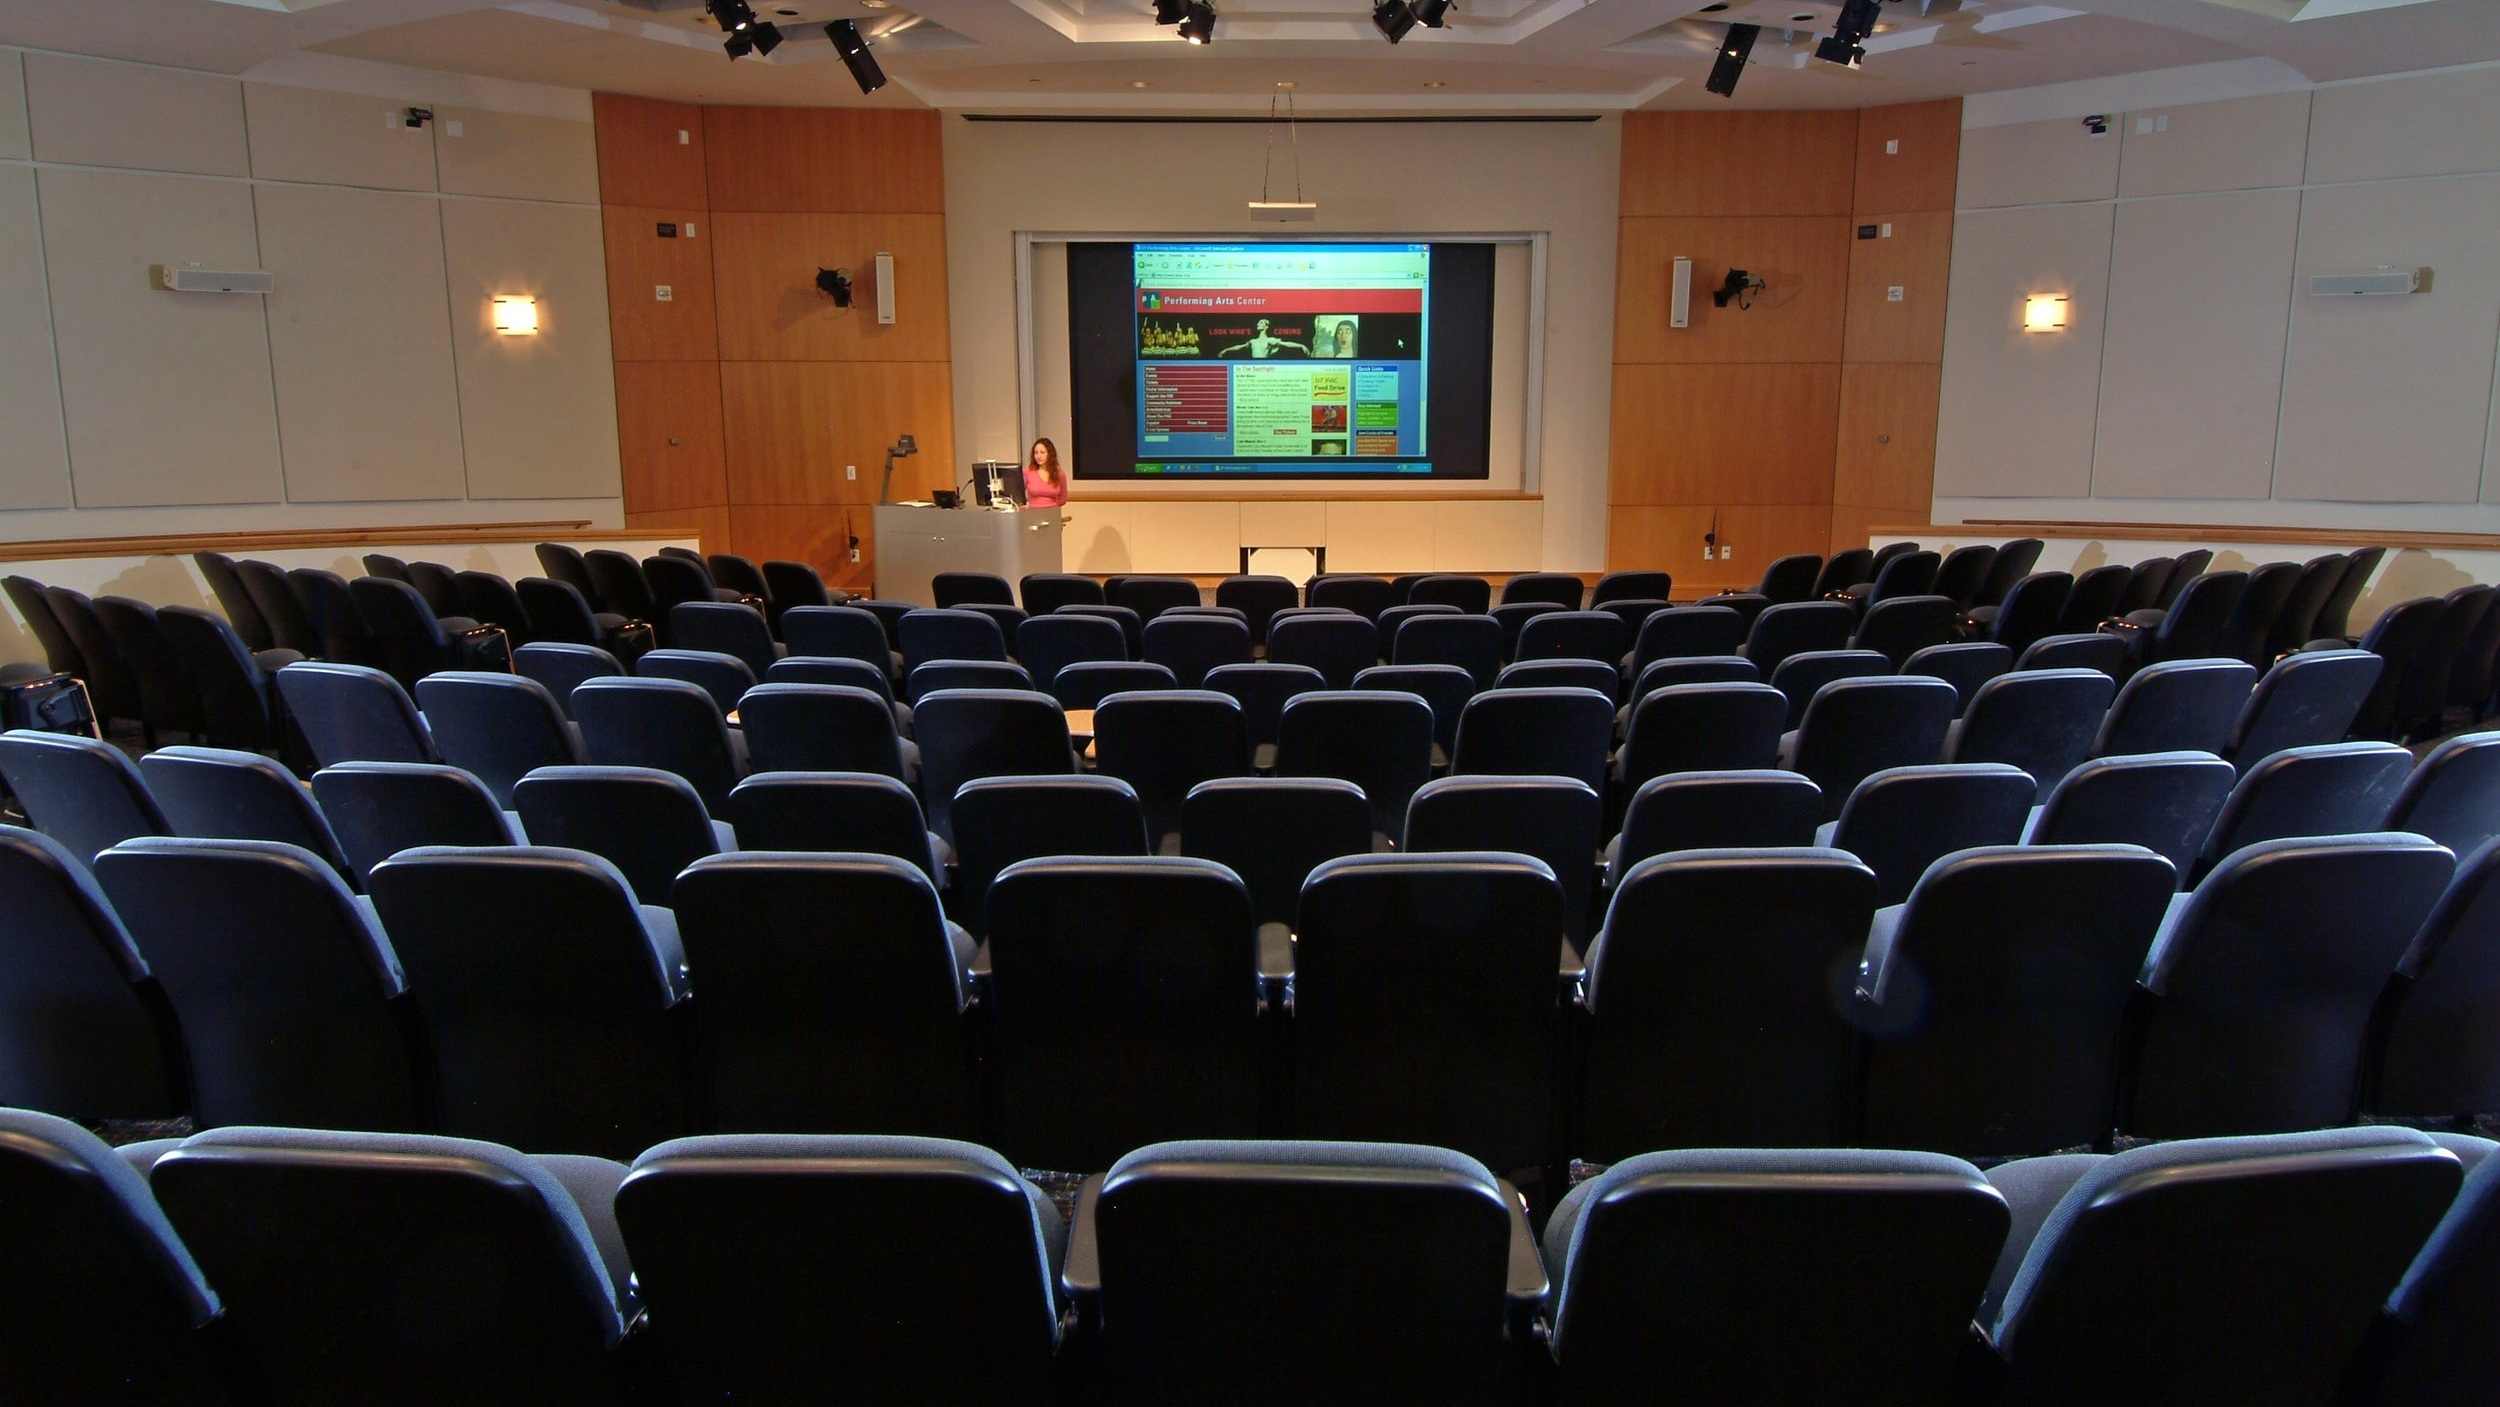 auditorium-meeting-audience-theatre-conference-convention-614716-pxhere.com.jpg